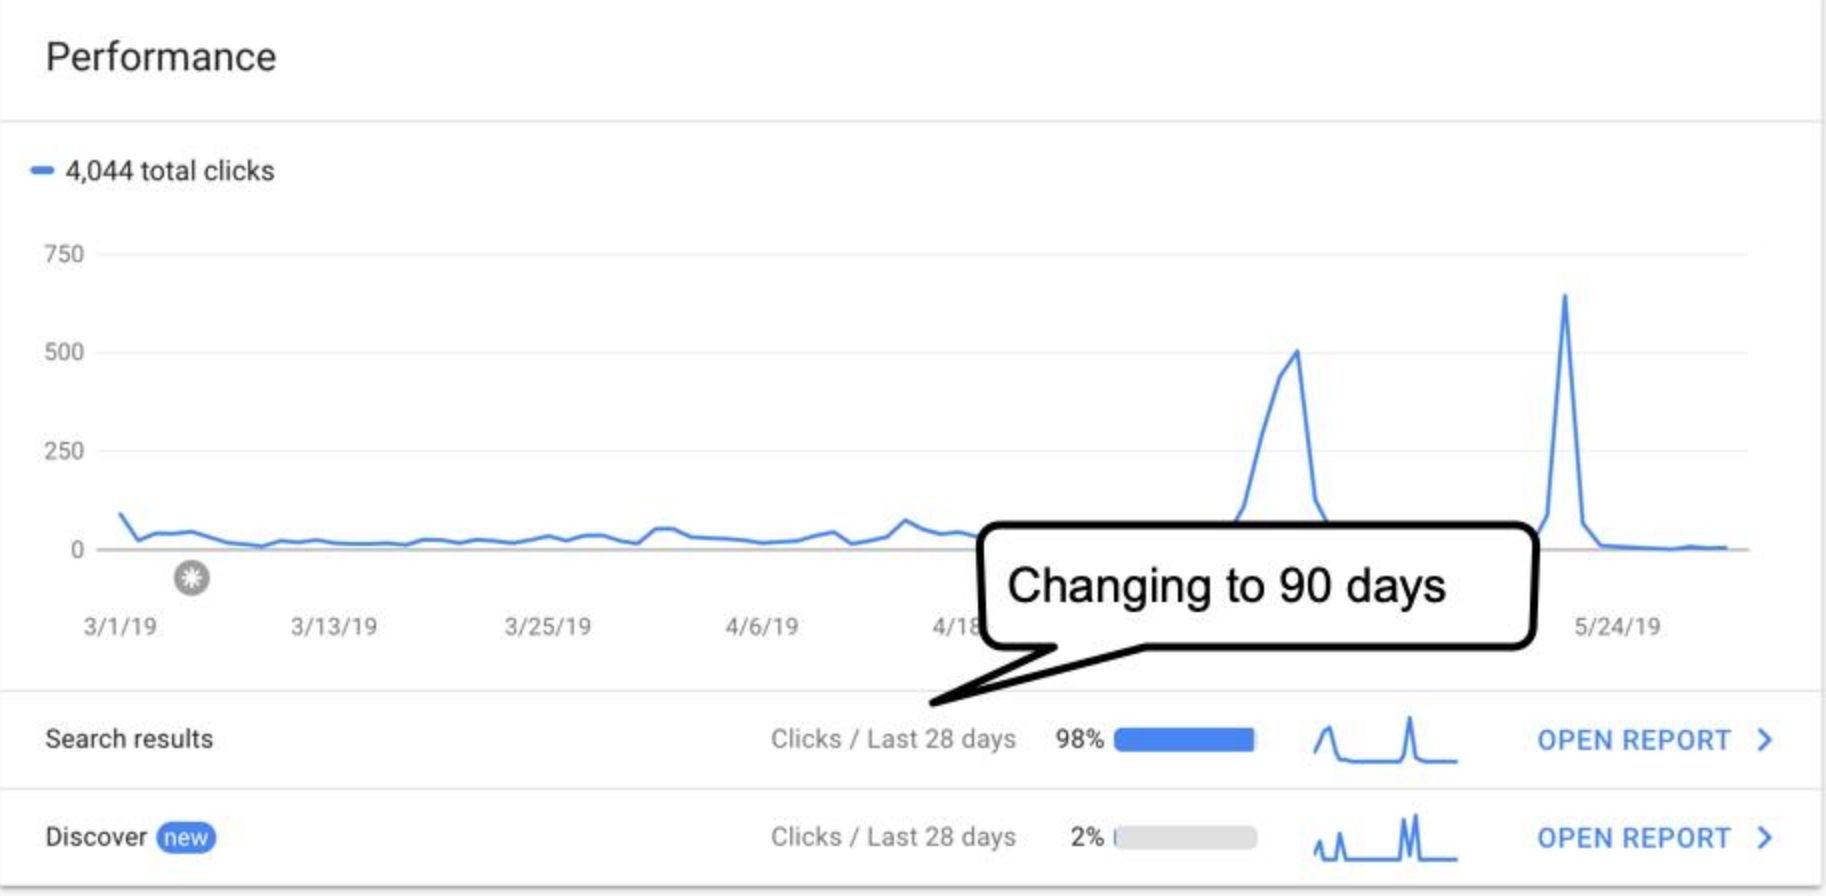 The Google Search Console now displays 90 days of search & # 038; Discover the data